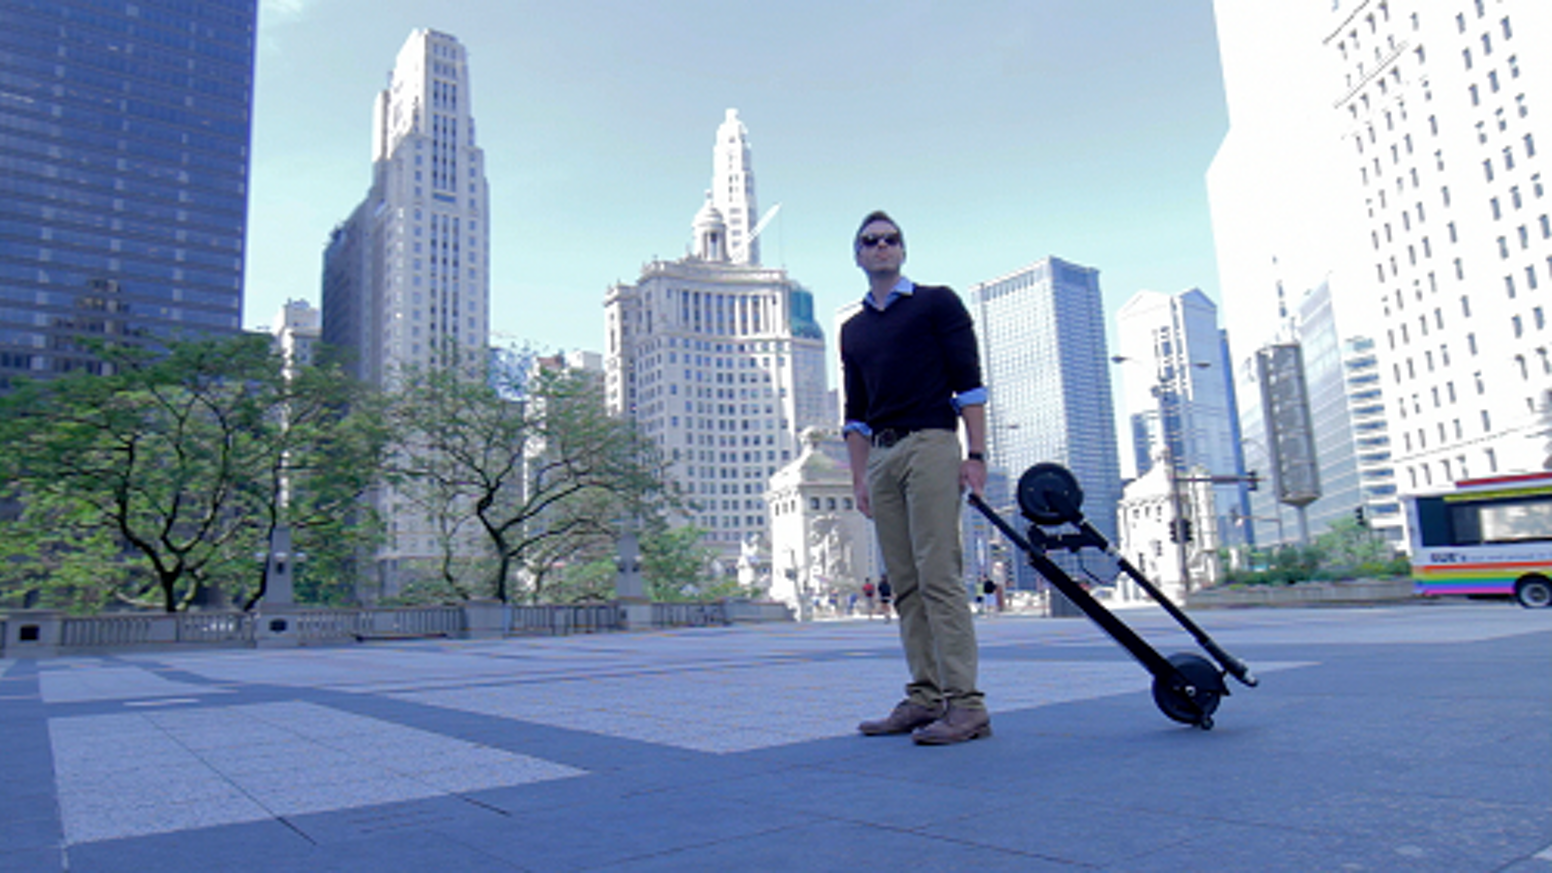 World's first self-standing dolly style e-scooter – by far the best combination of portability and motorized personal transportation.